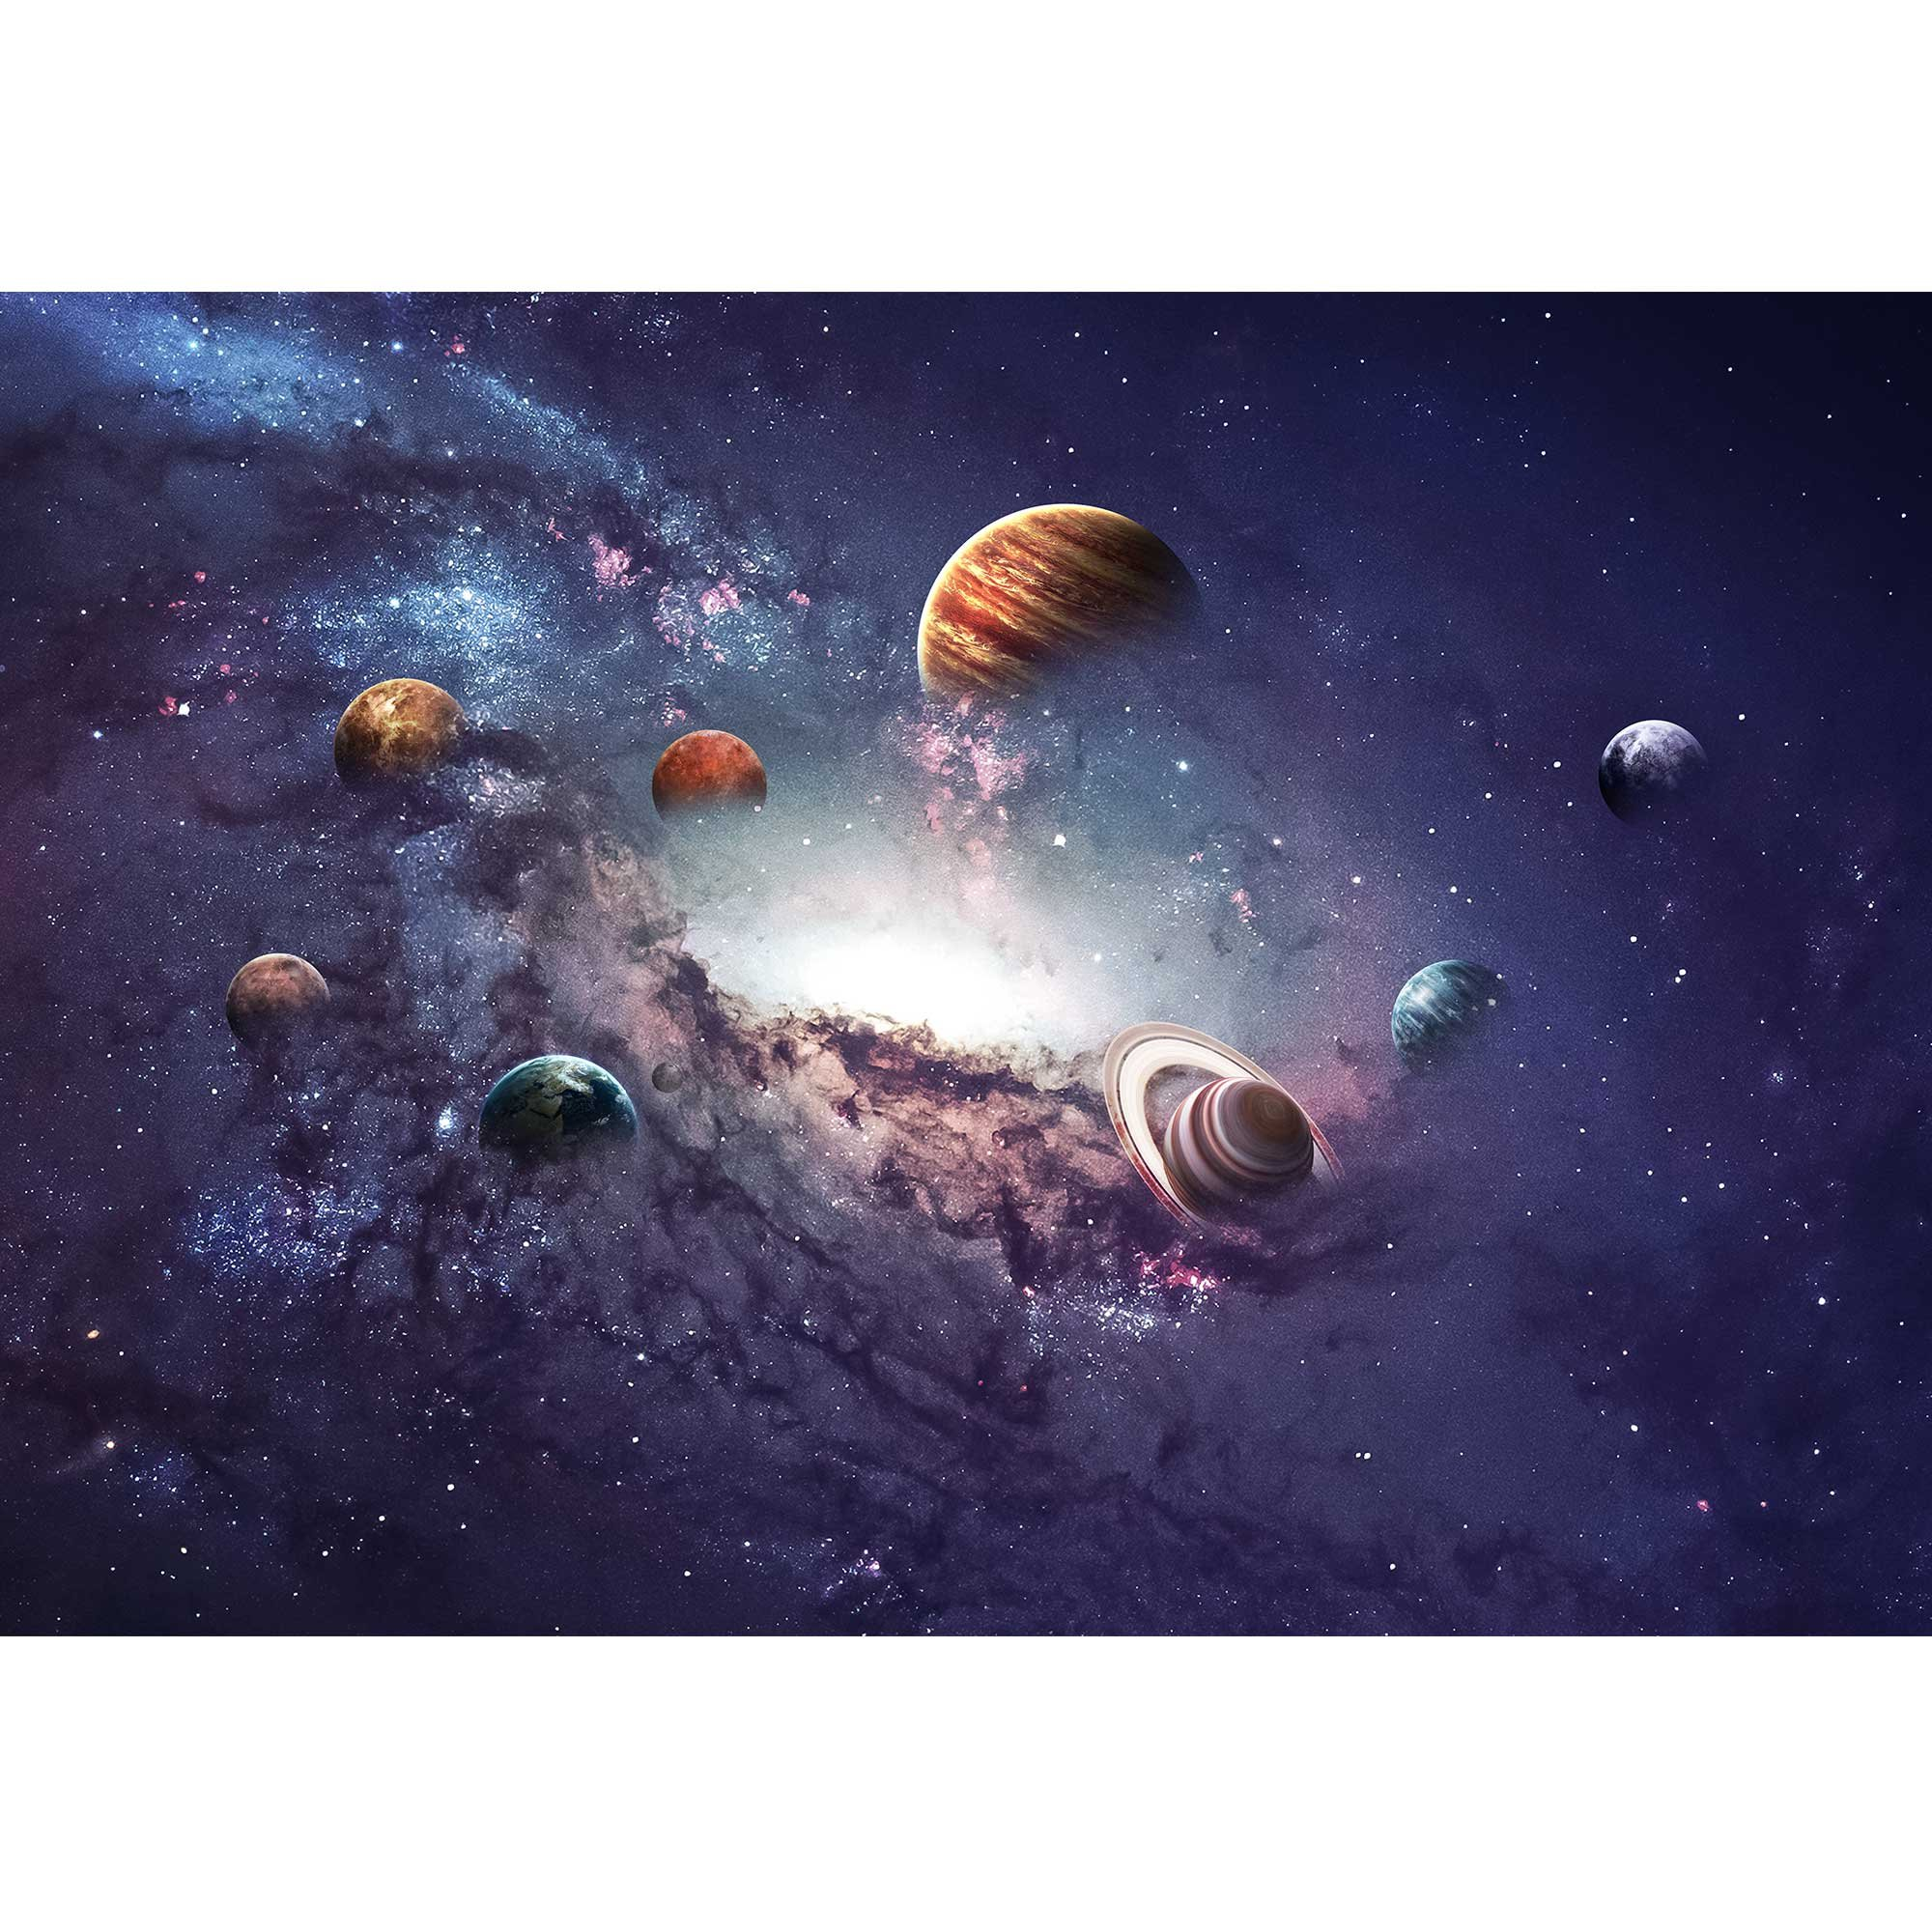 wall26 - High Resolution Images Presents Creating Planets of The Solar System. - Removable Wall Mural | Self-Adhesive Large Wallpaper - 100x144 inches by wall26 (Image #2)